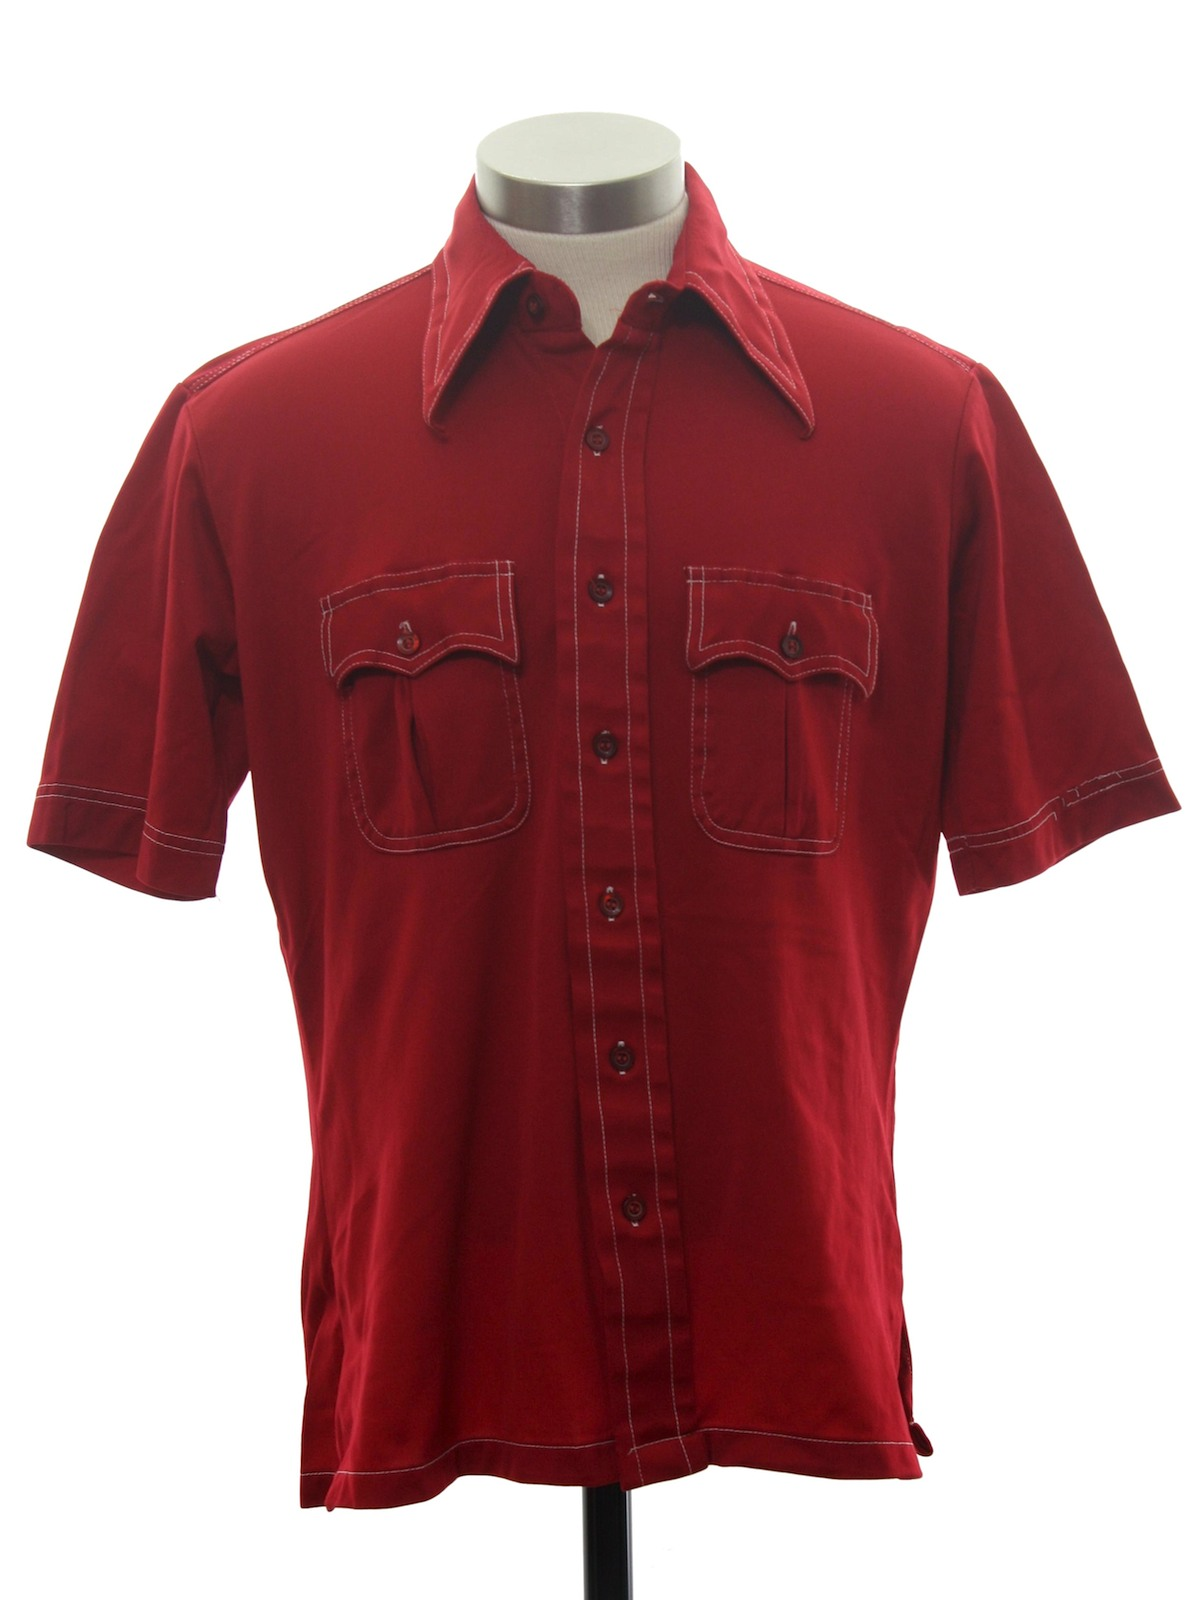 Vintage montgomery ward 1970s shirt 70s montgomery ward for Sports shirts near me